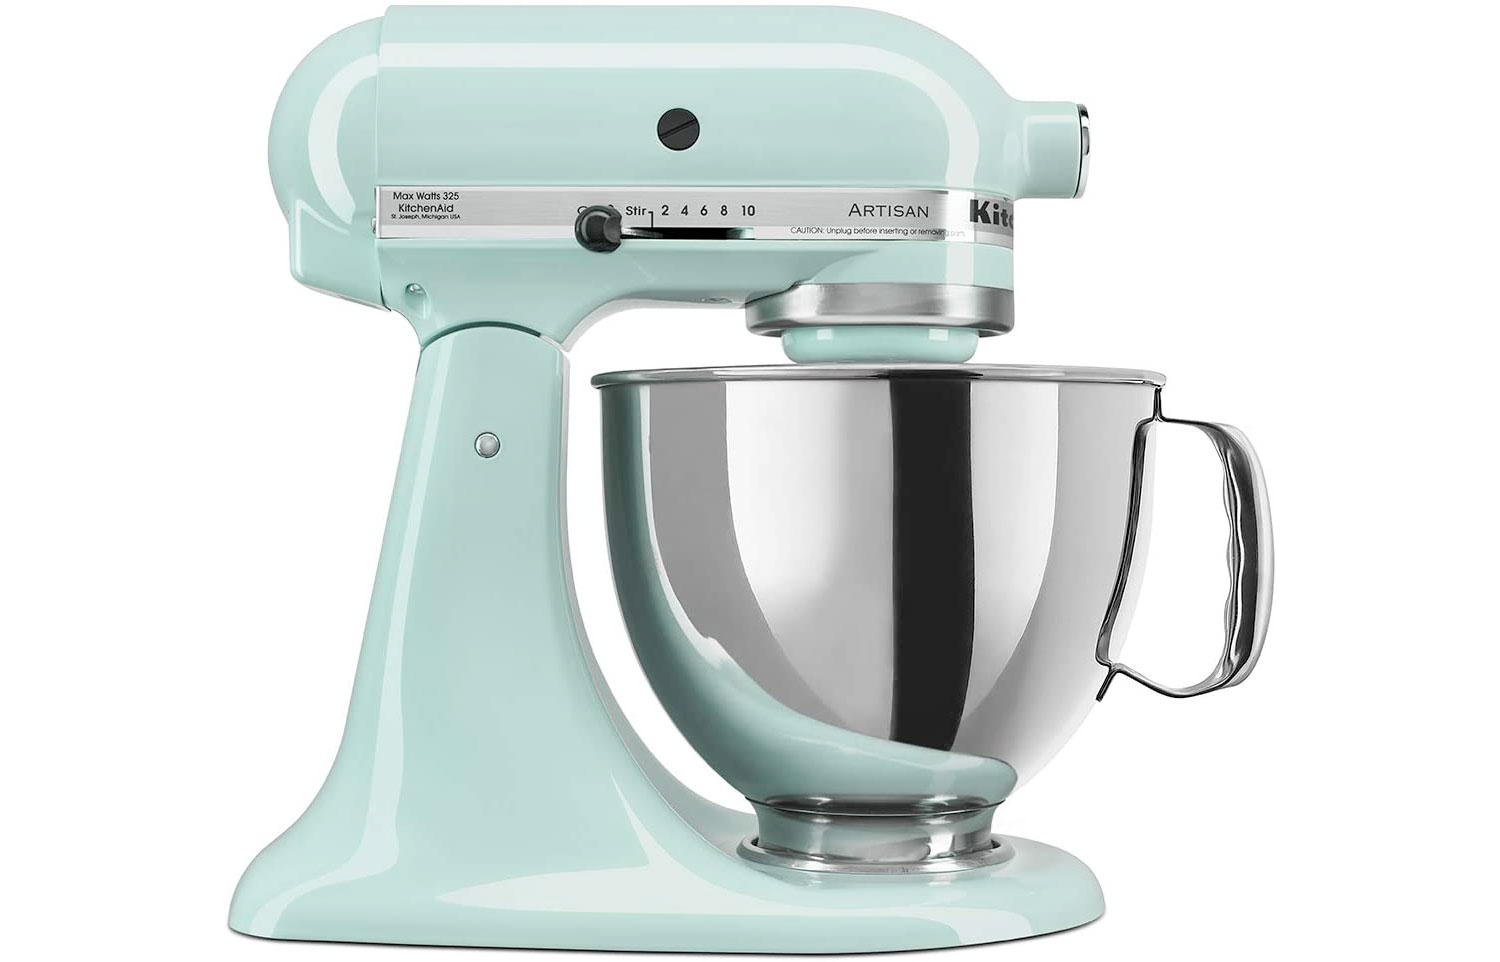 Amazon:KitchenAid 5 Quart Stand Mixer只賣$369.99